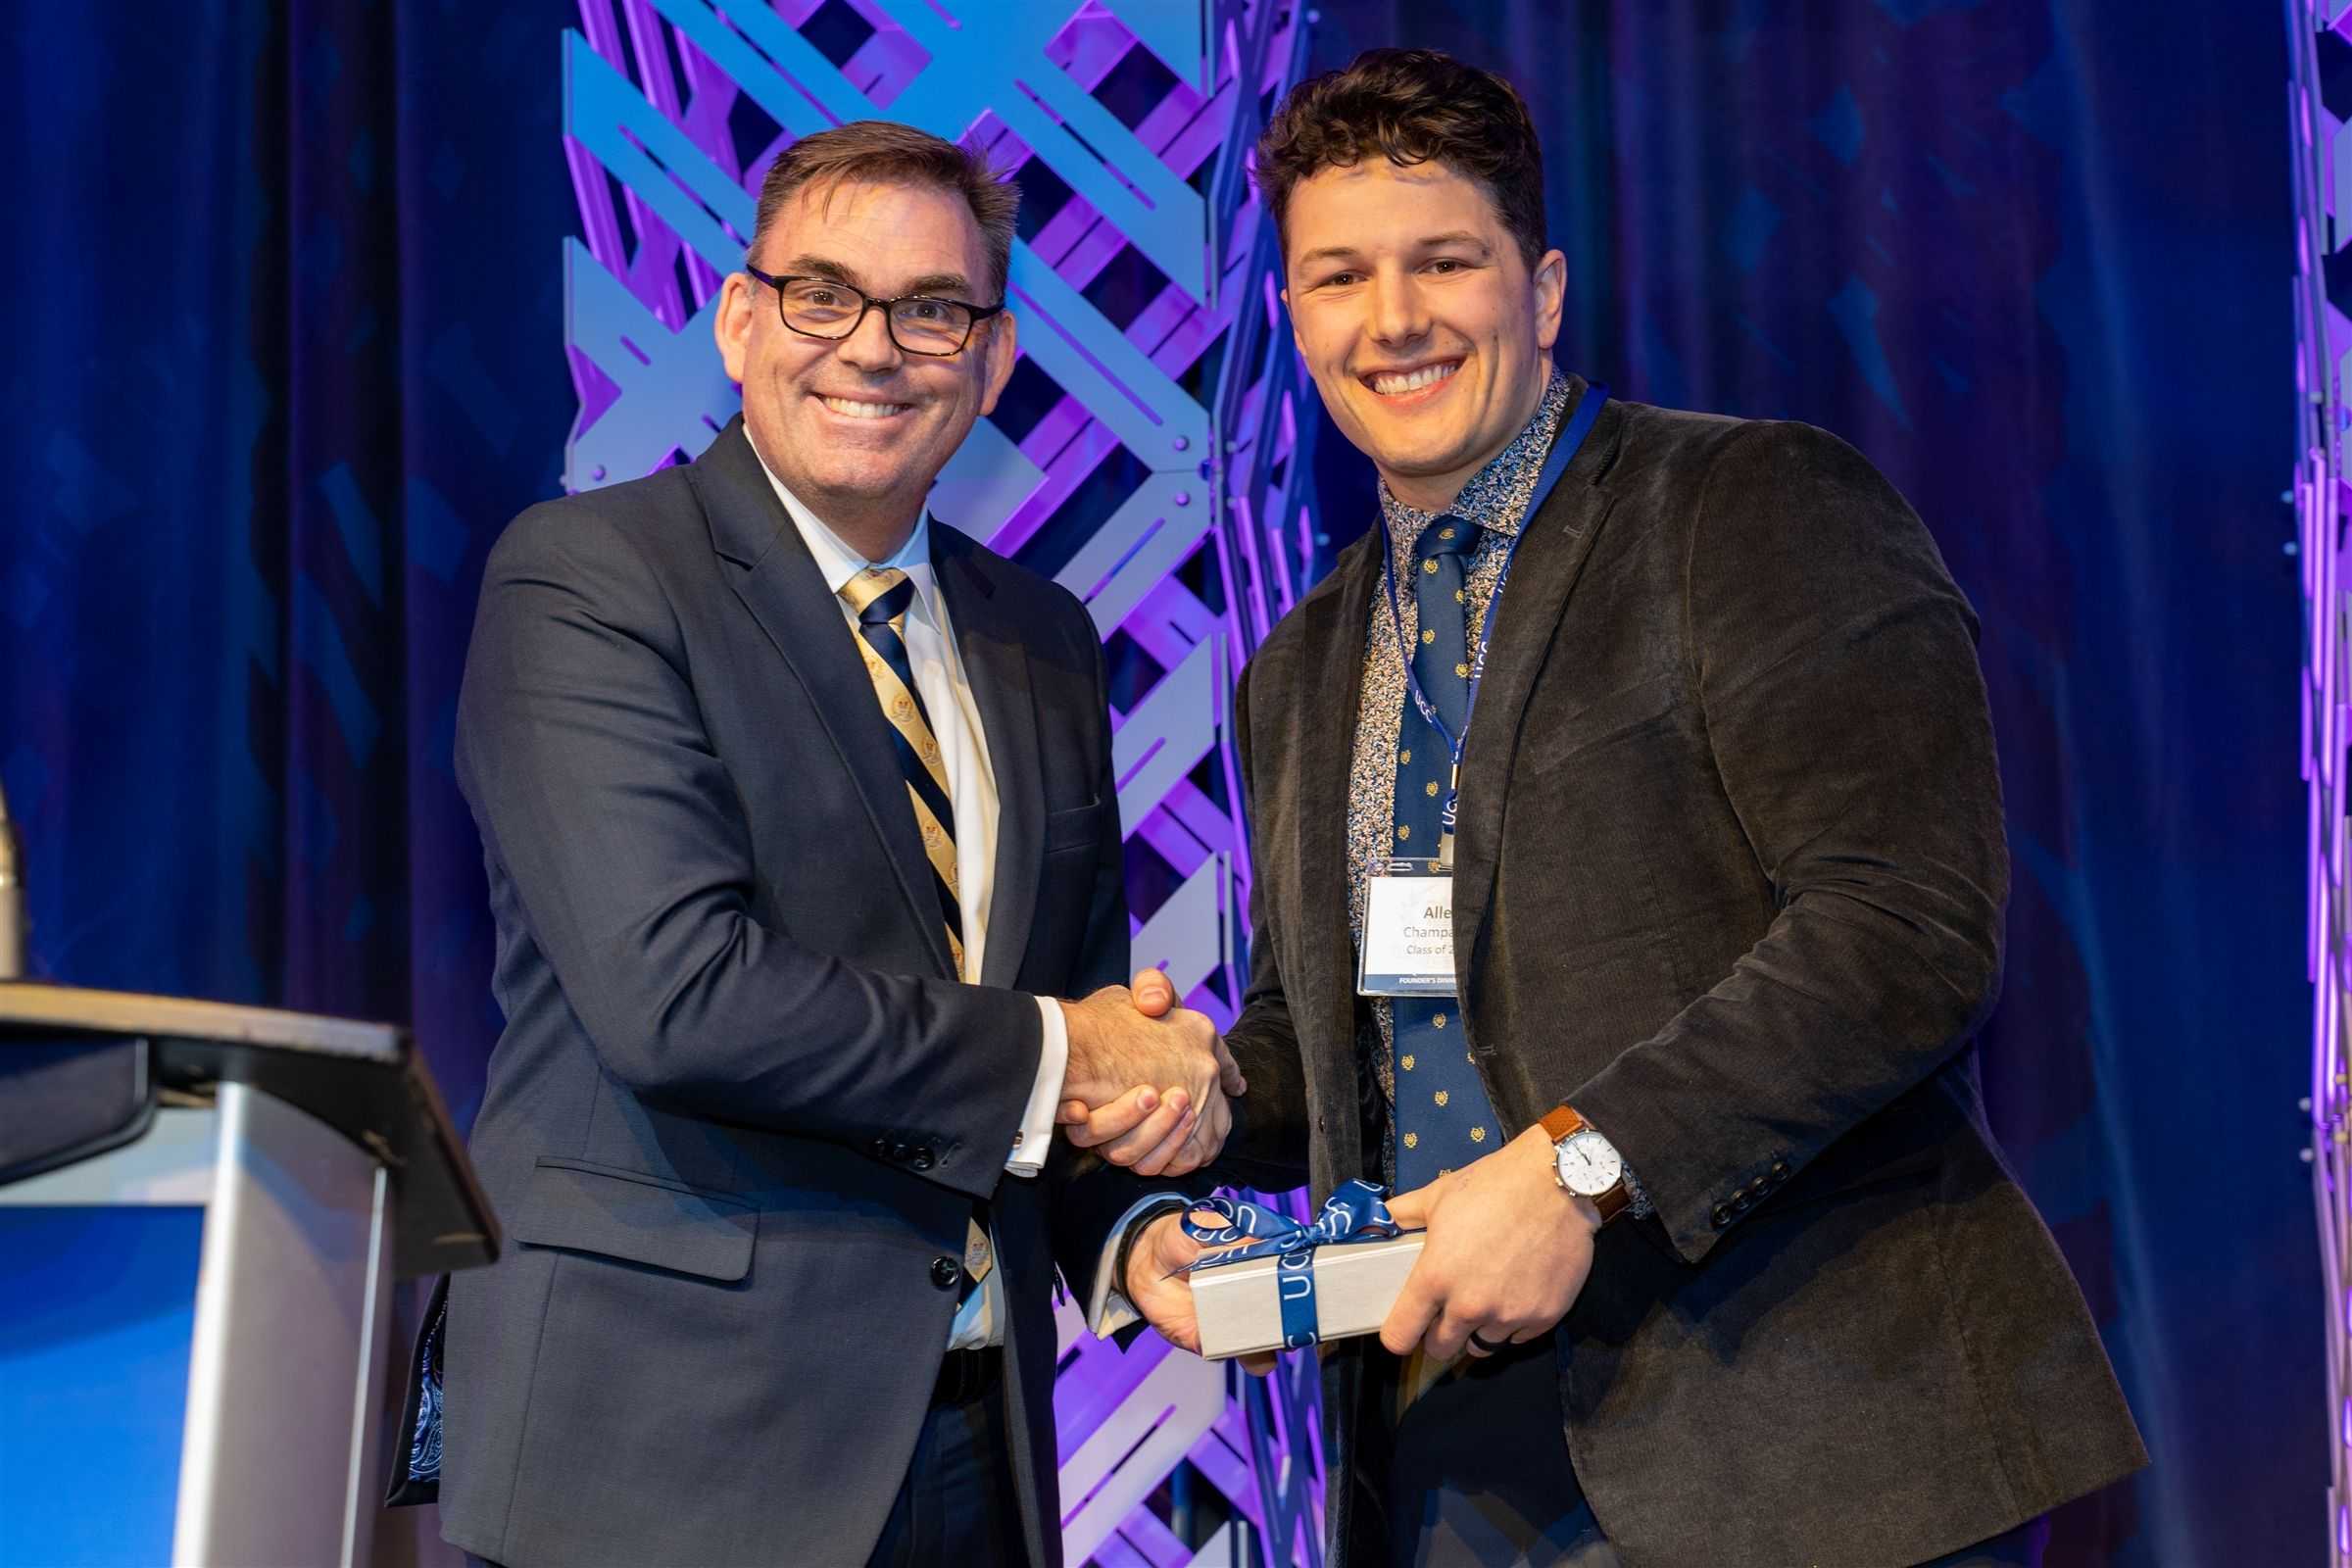 Allen Champagne '11 received the Young Old Boy of Distinction Award at Founder's Dinner in February 2020.